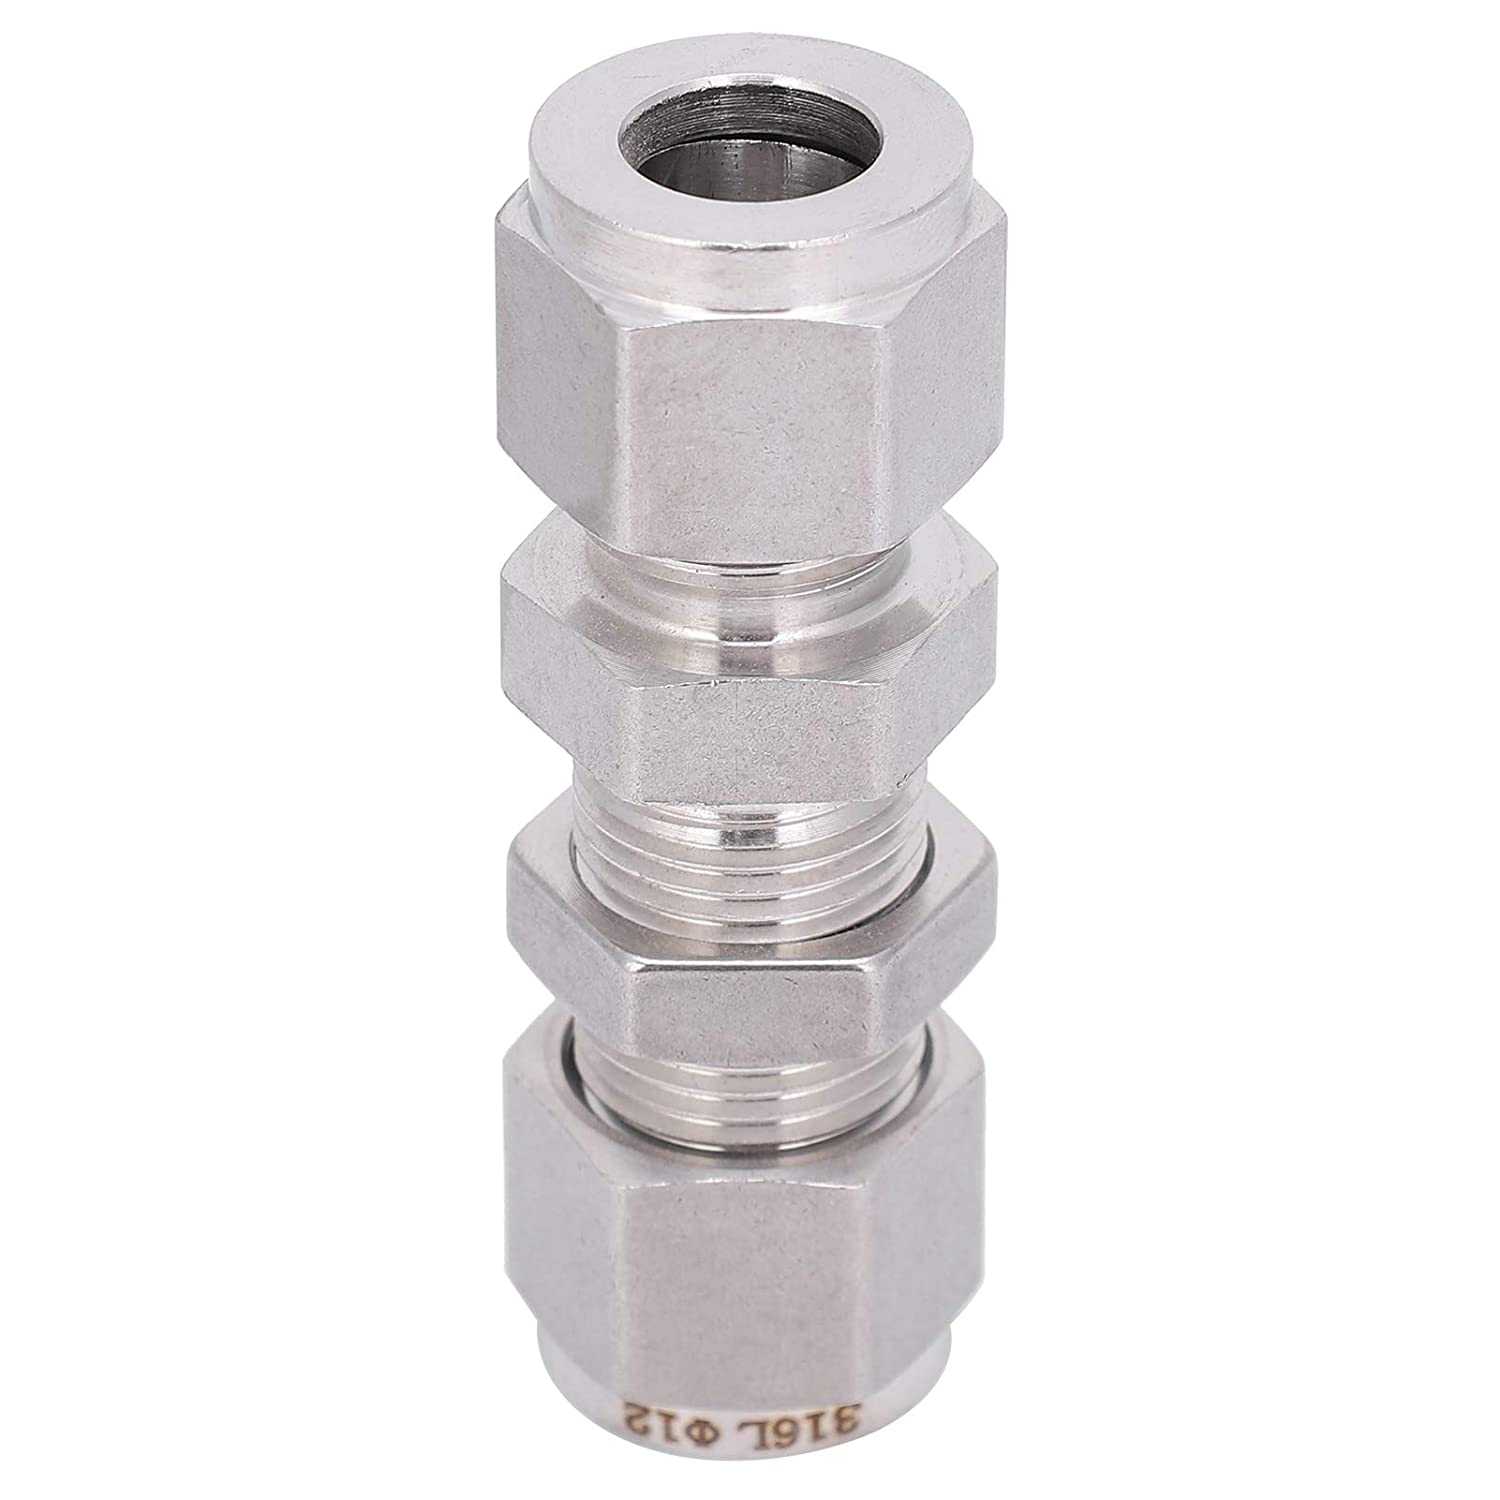 Simple and Max 54% OFF Max 59% OFF Convenient High Pressure Ste Resistance Stainless 316